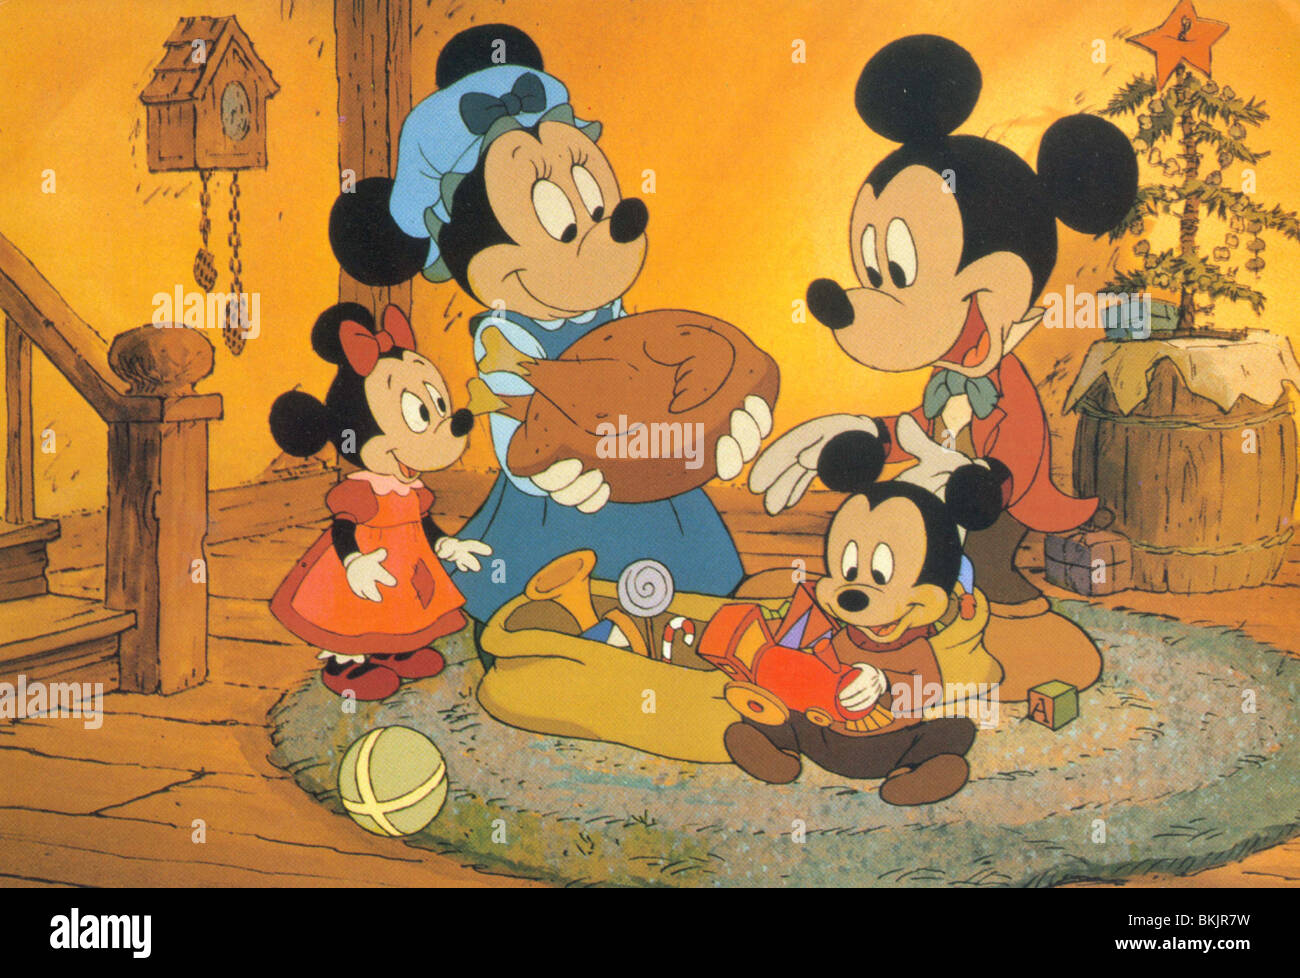 mickeys christmas carol 1983 minnie mouse mickey mouse mkcc 001foh stock image - Mickeys Christmas Carol